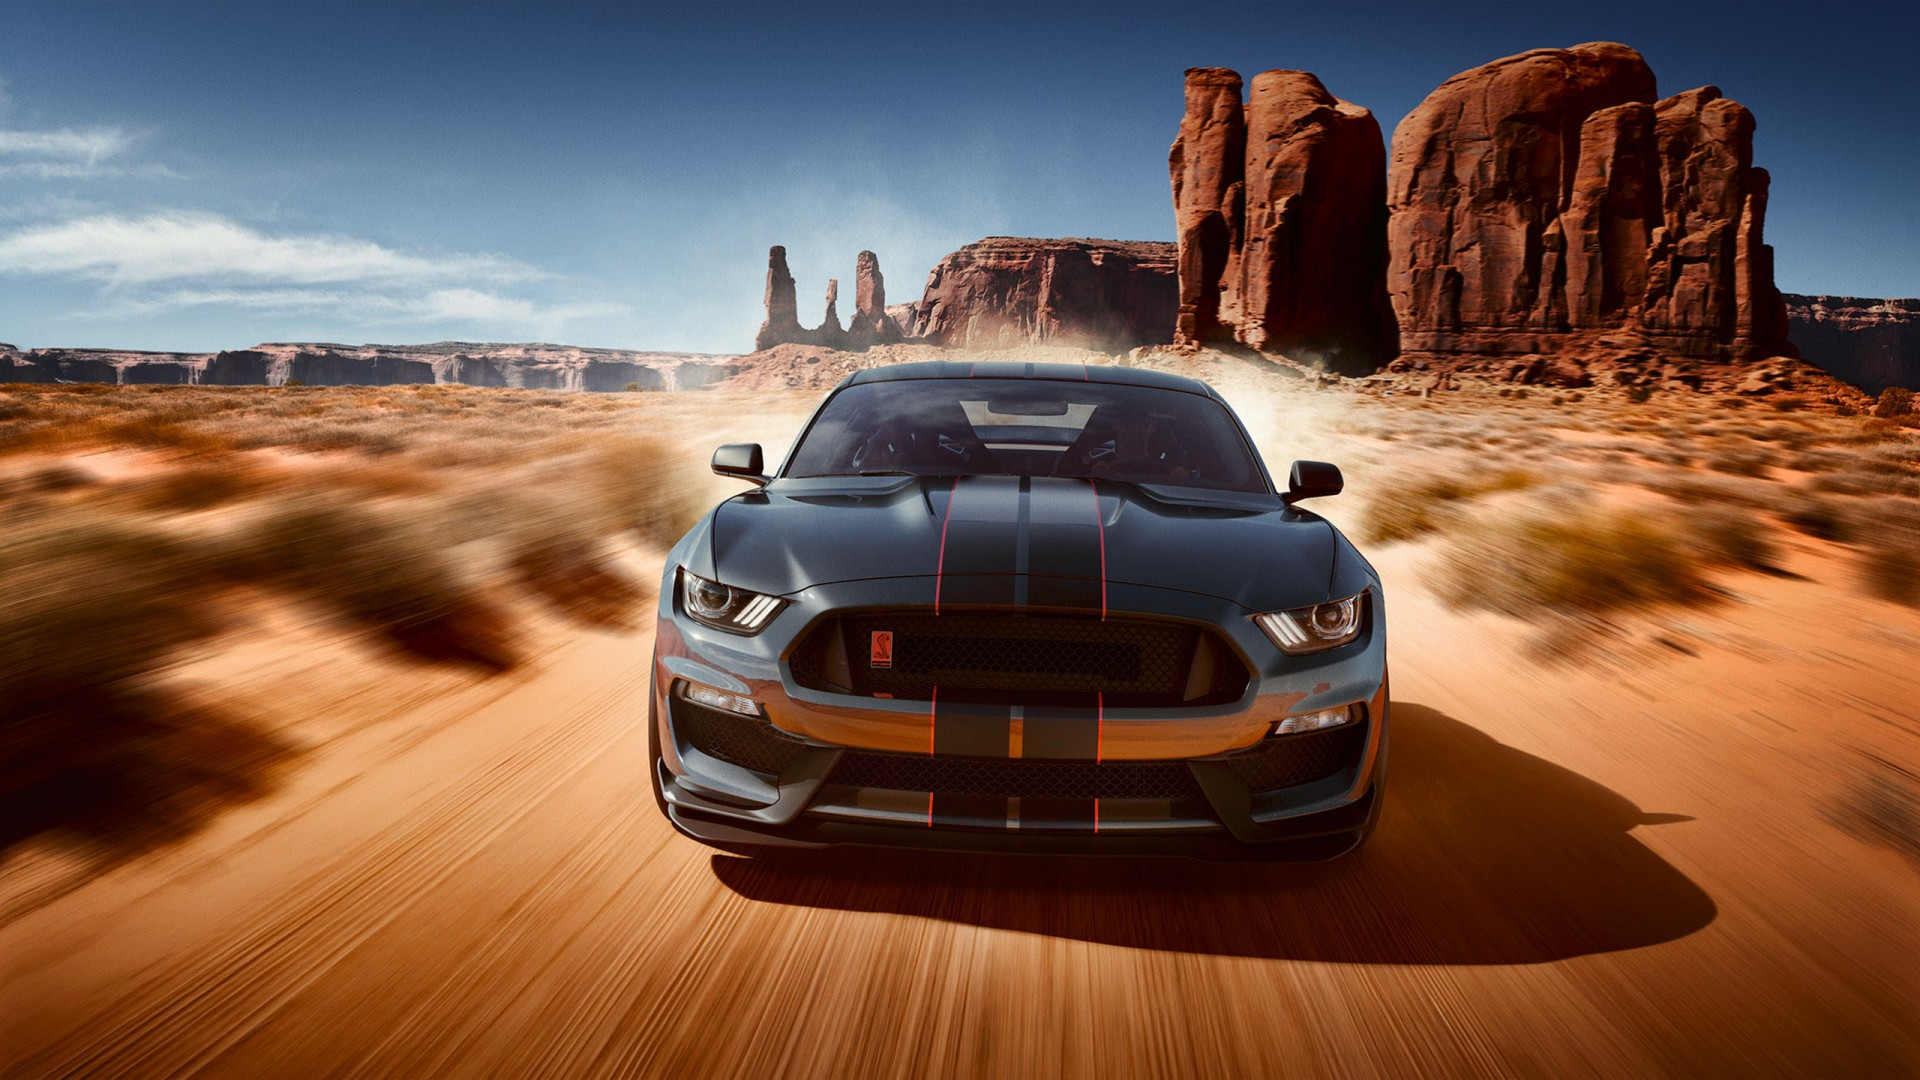 Iphone 4 Wallpapers Hd 3d Ford Mustang Shelby Gt350 Wallpapers Hd Wallpapers Id